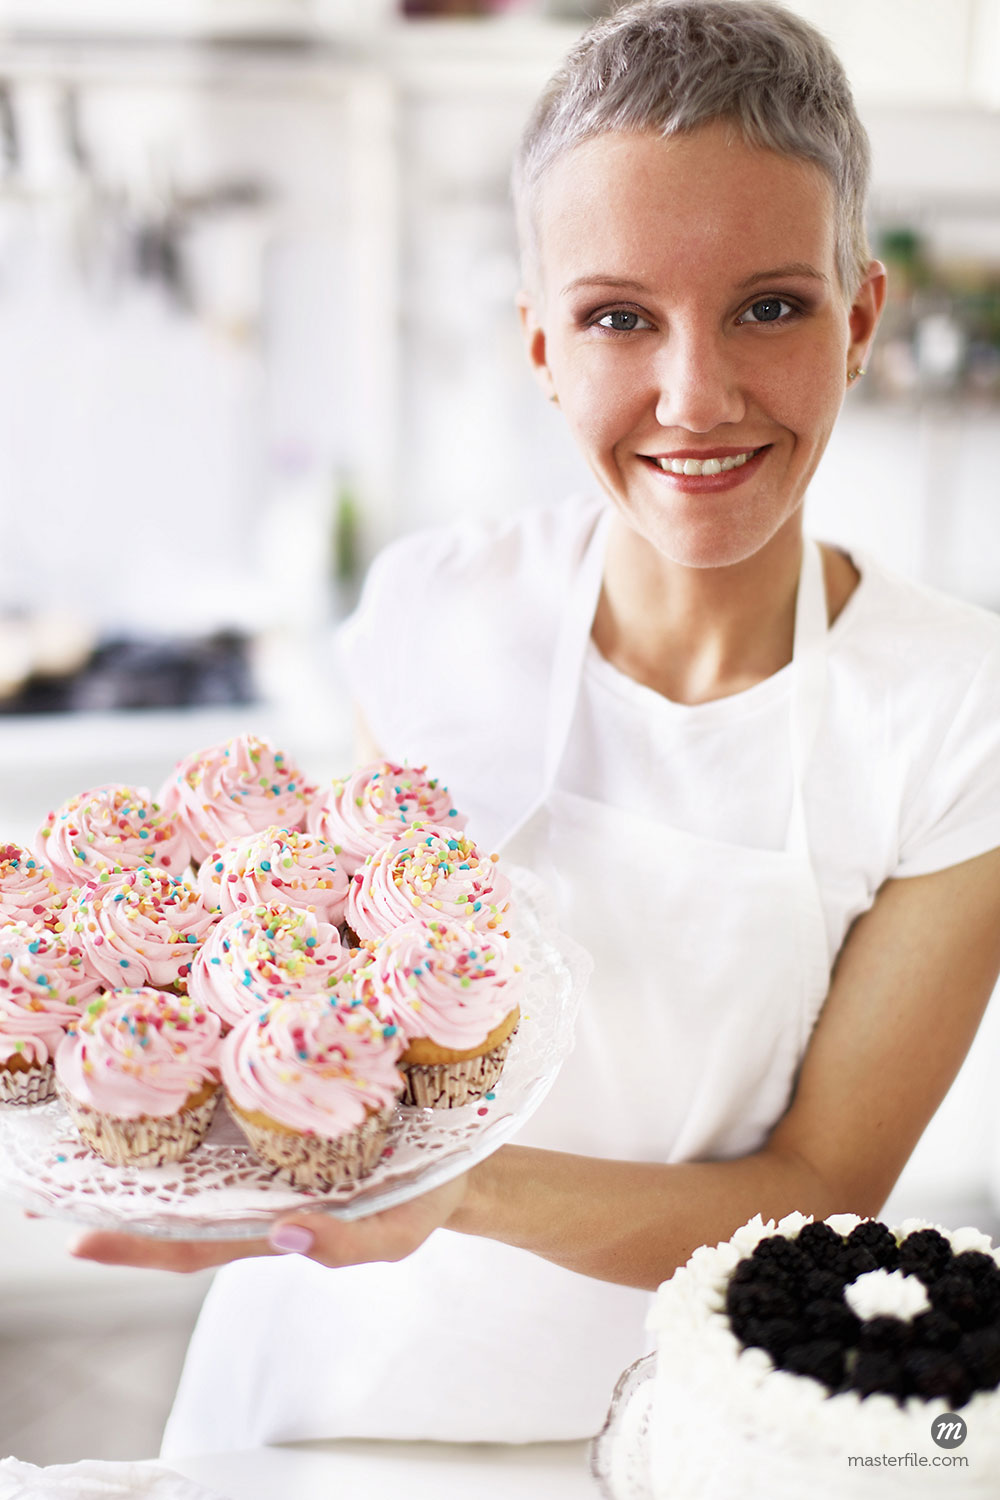 Portrait of woman holding hand made cupcakes  © Masterfile Royalty-Free